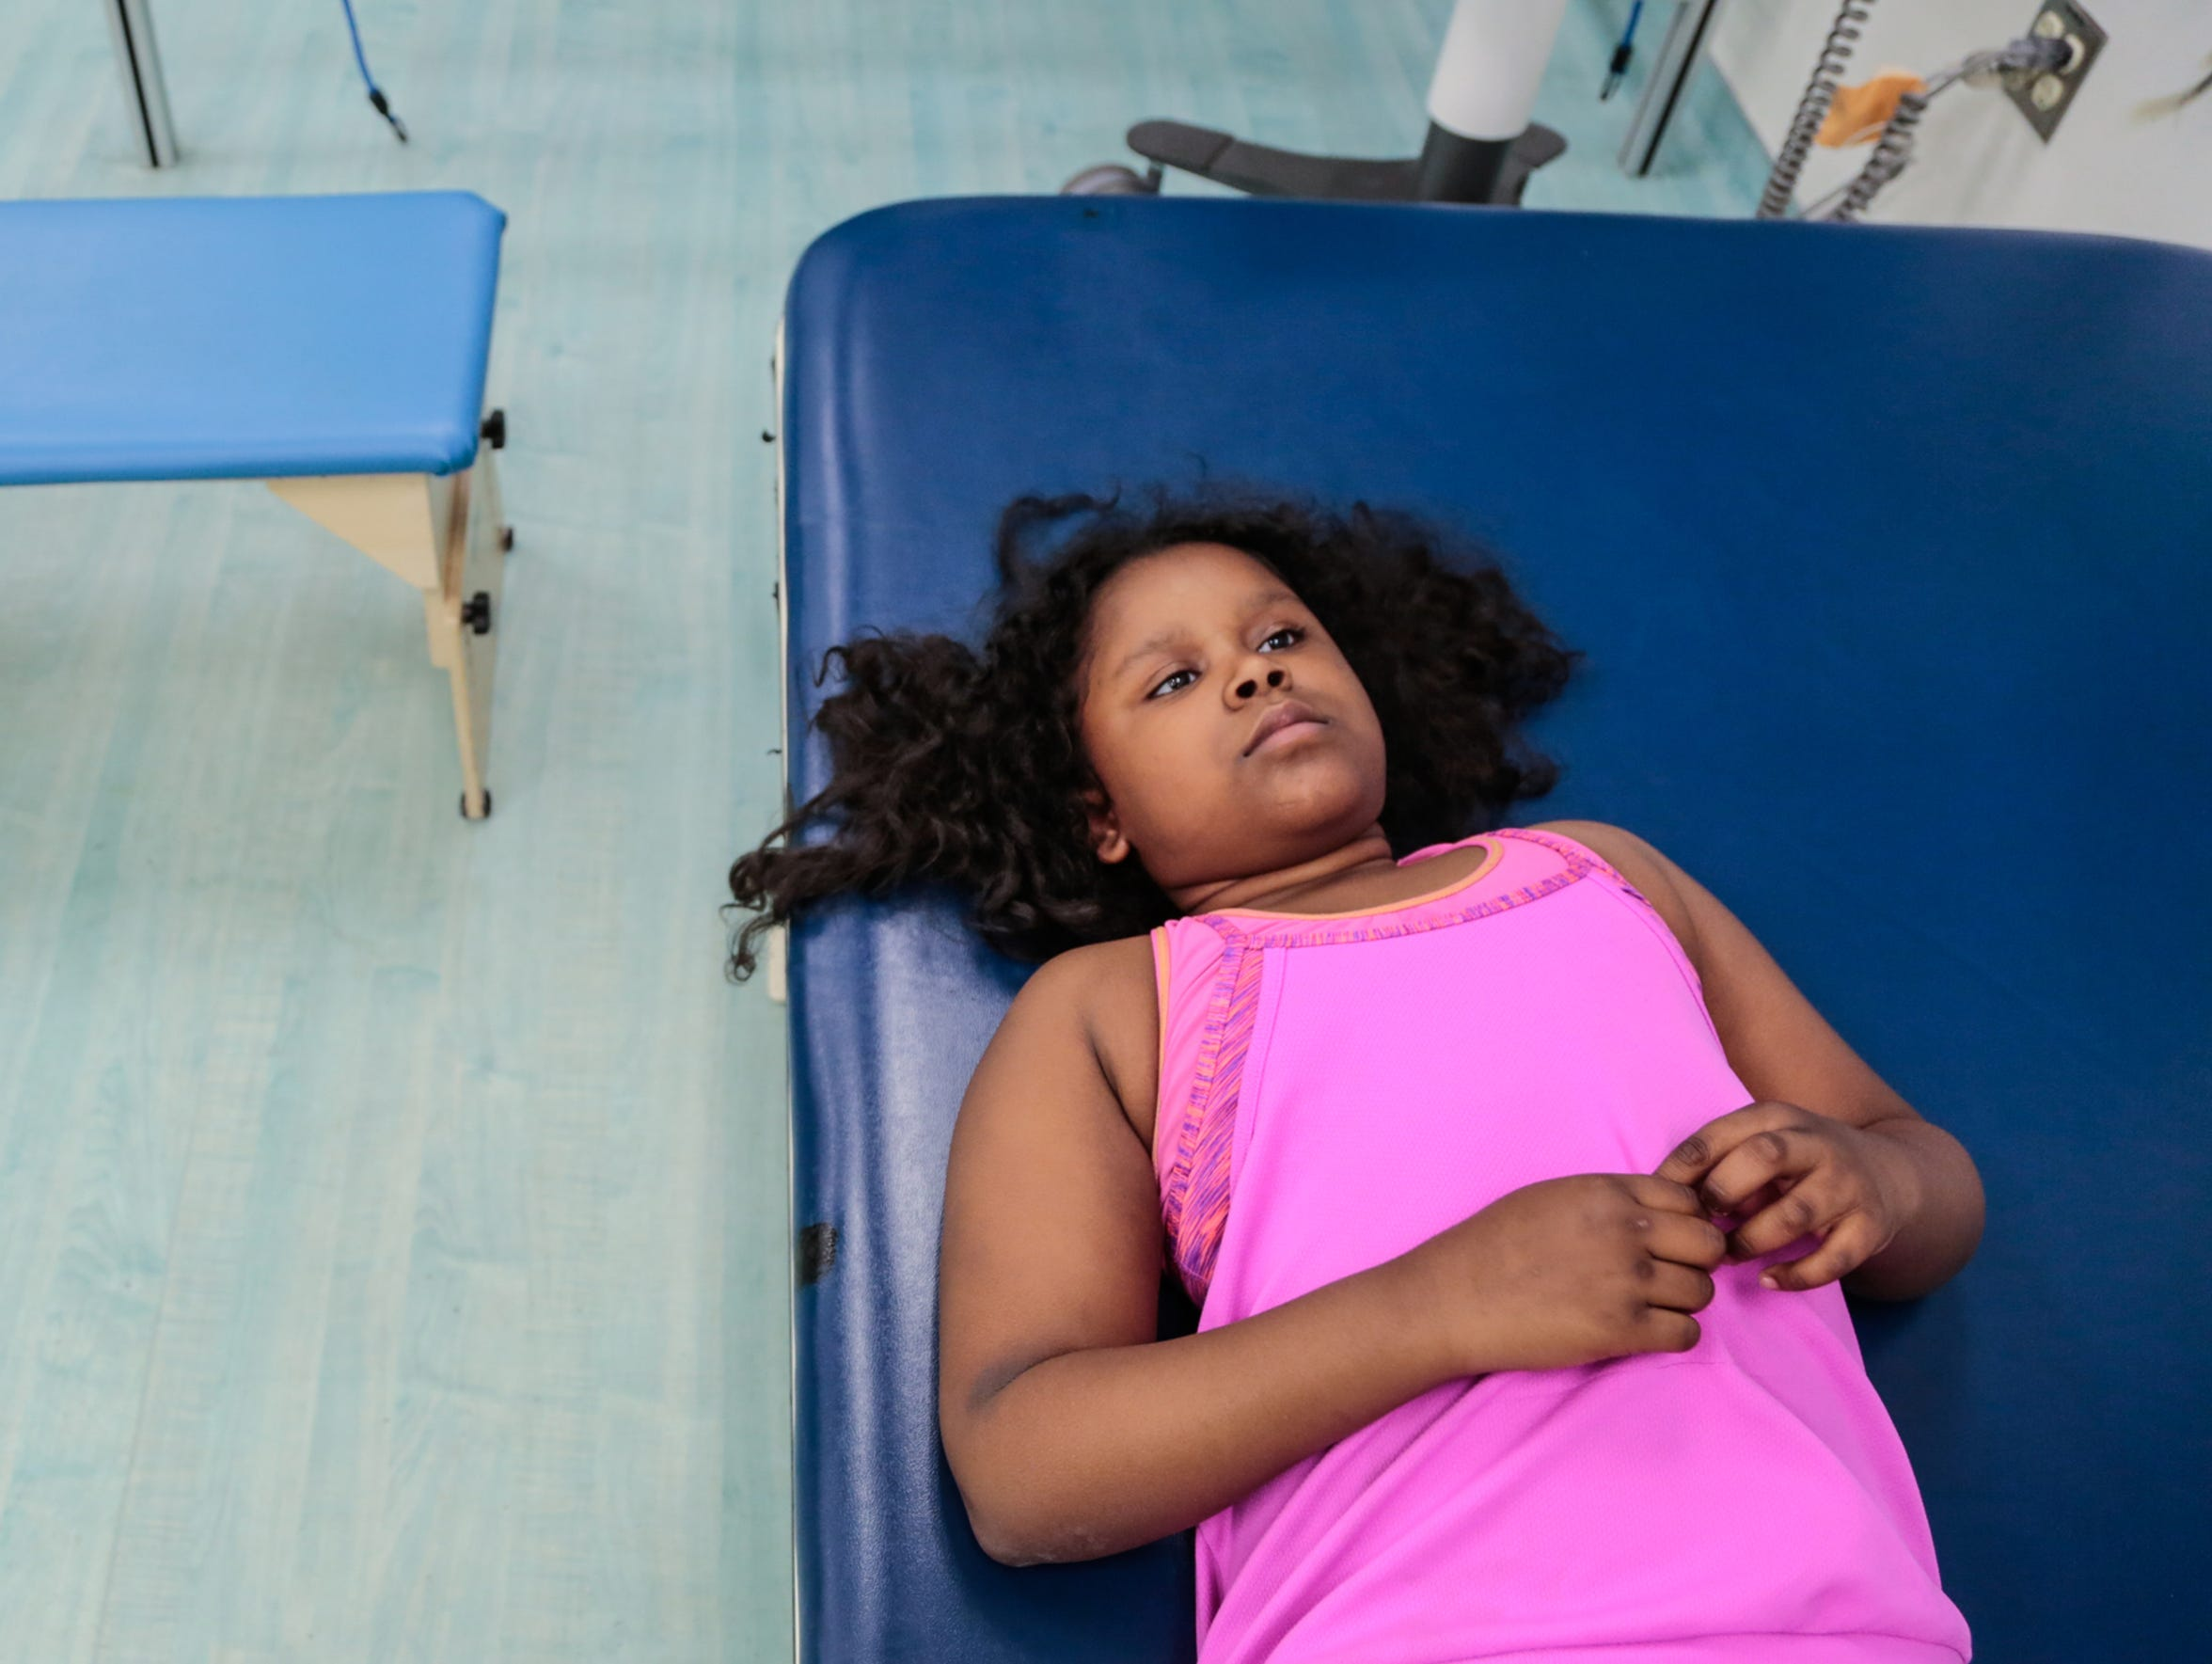 India Williams, 10, of Detroit awaits the start of